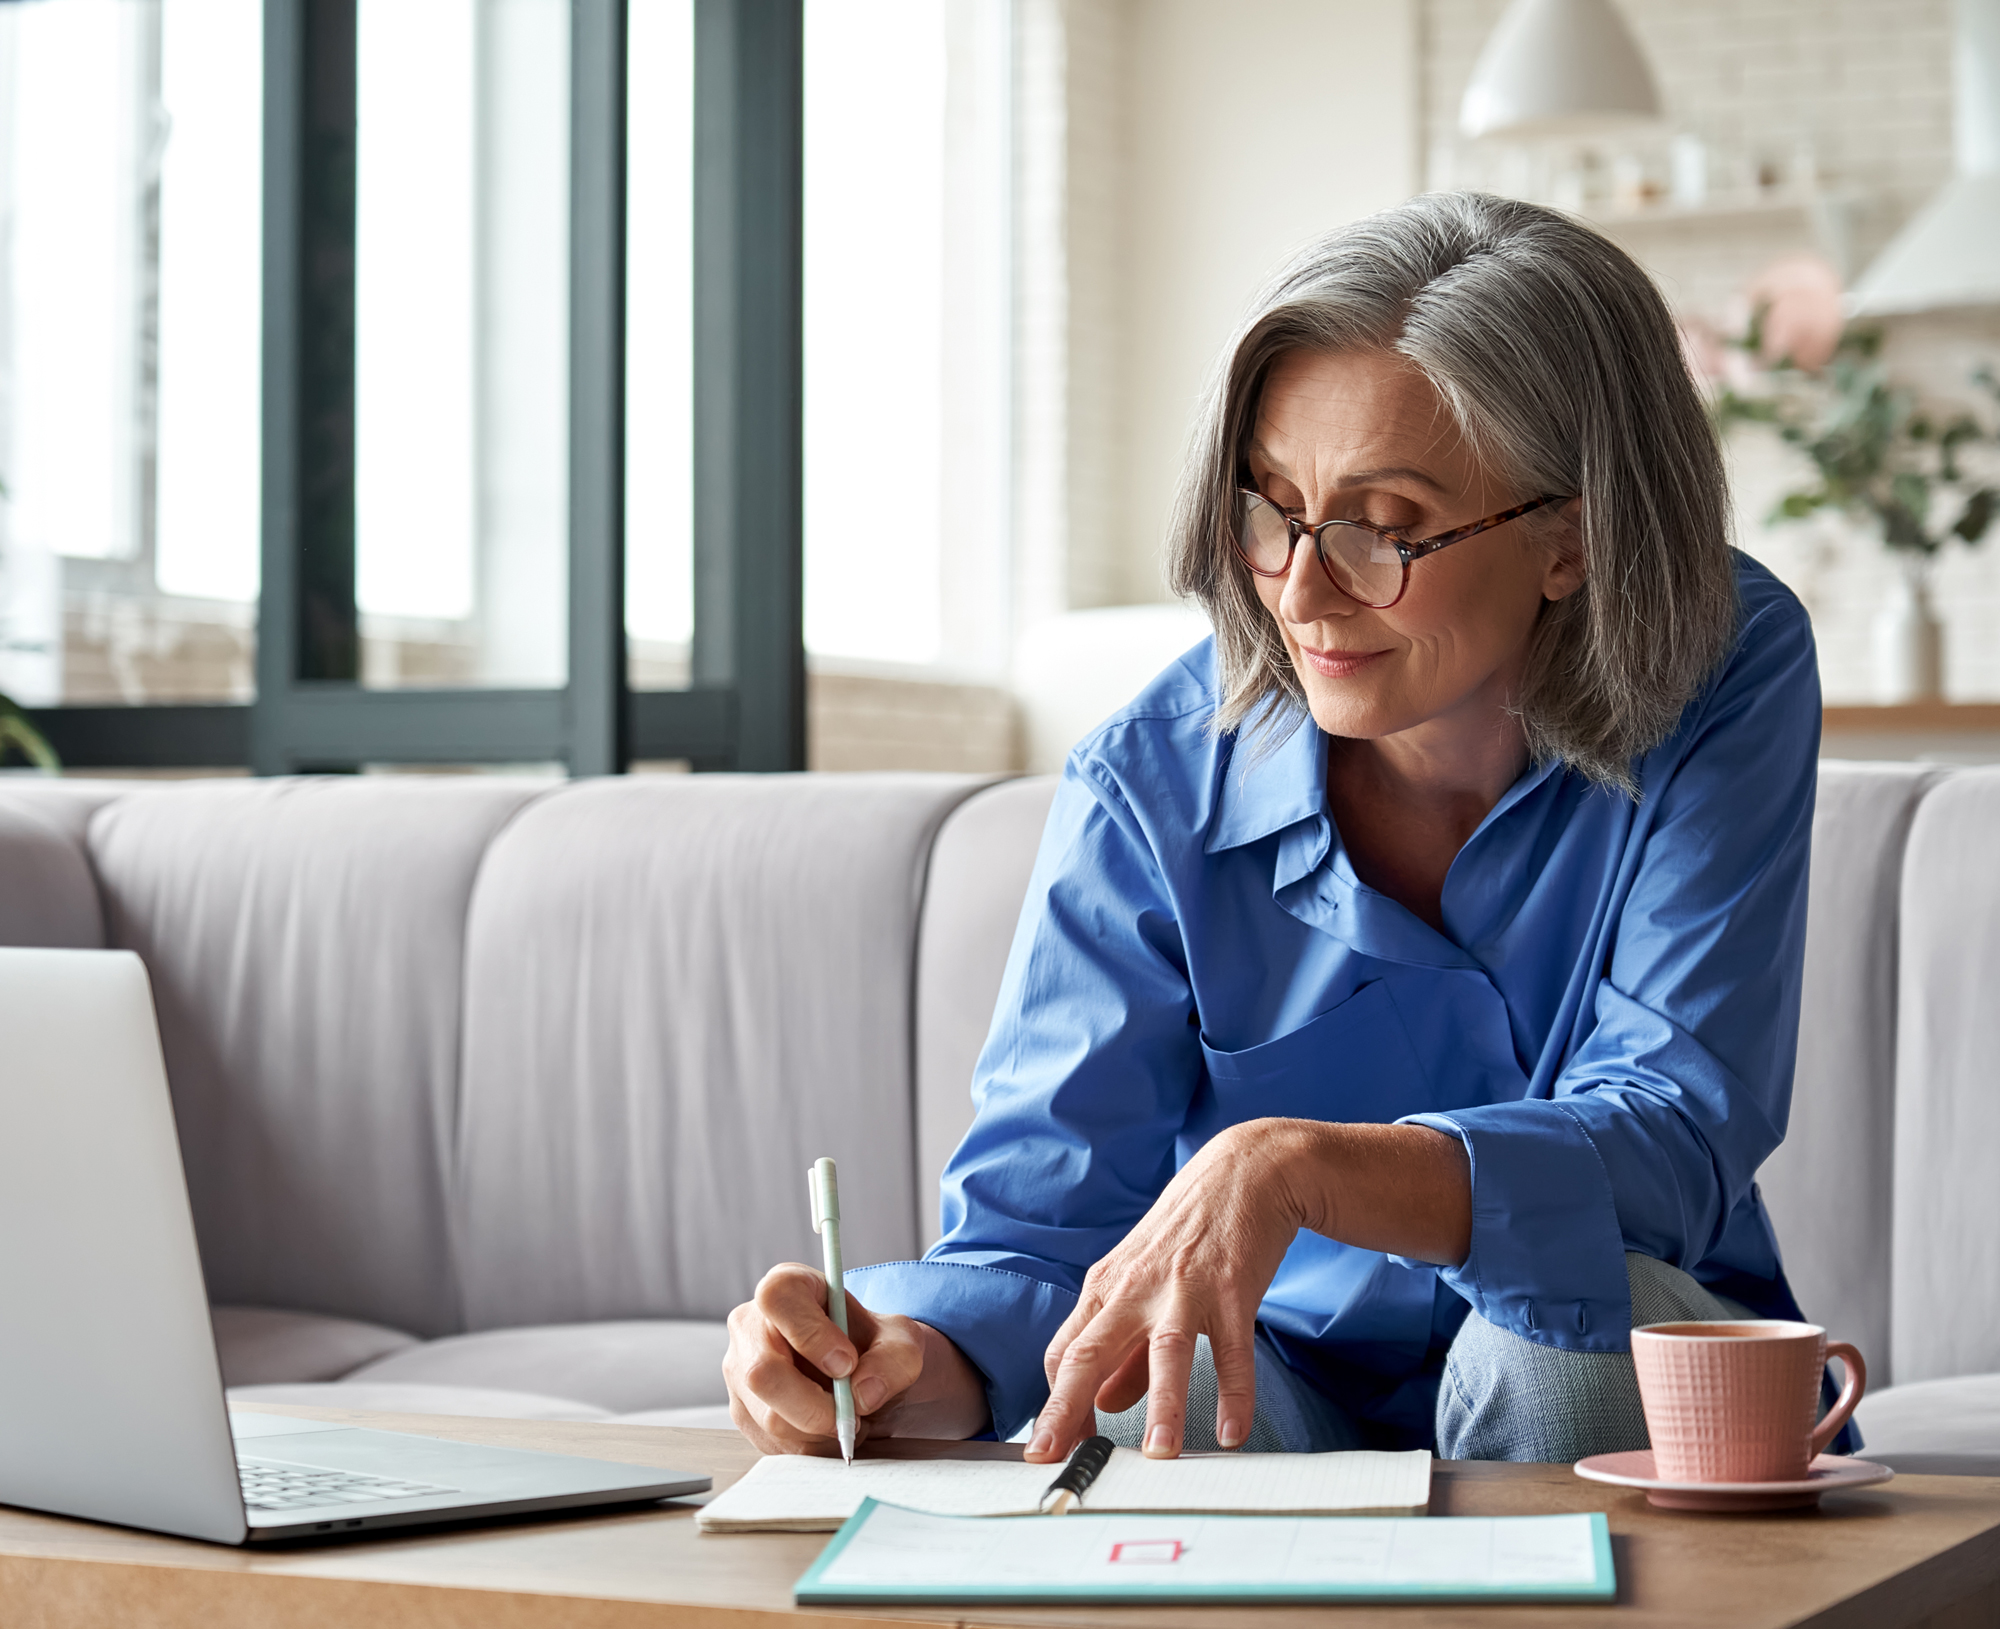 middle-aged woman doing paperwork